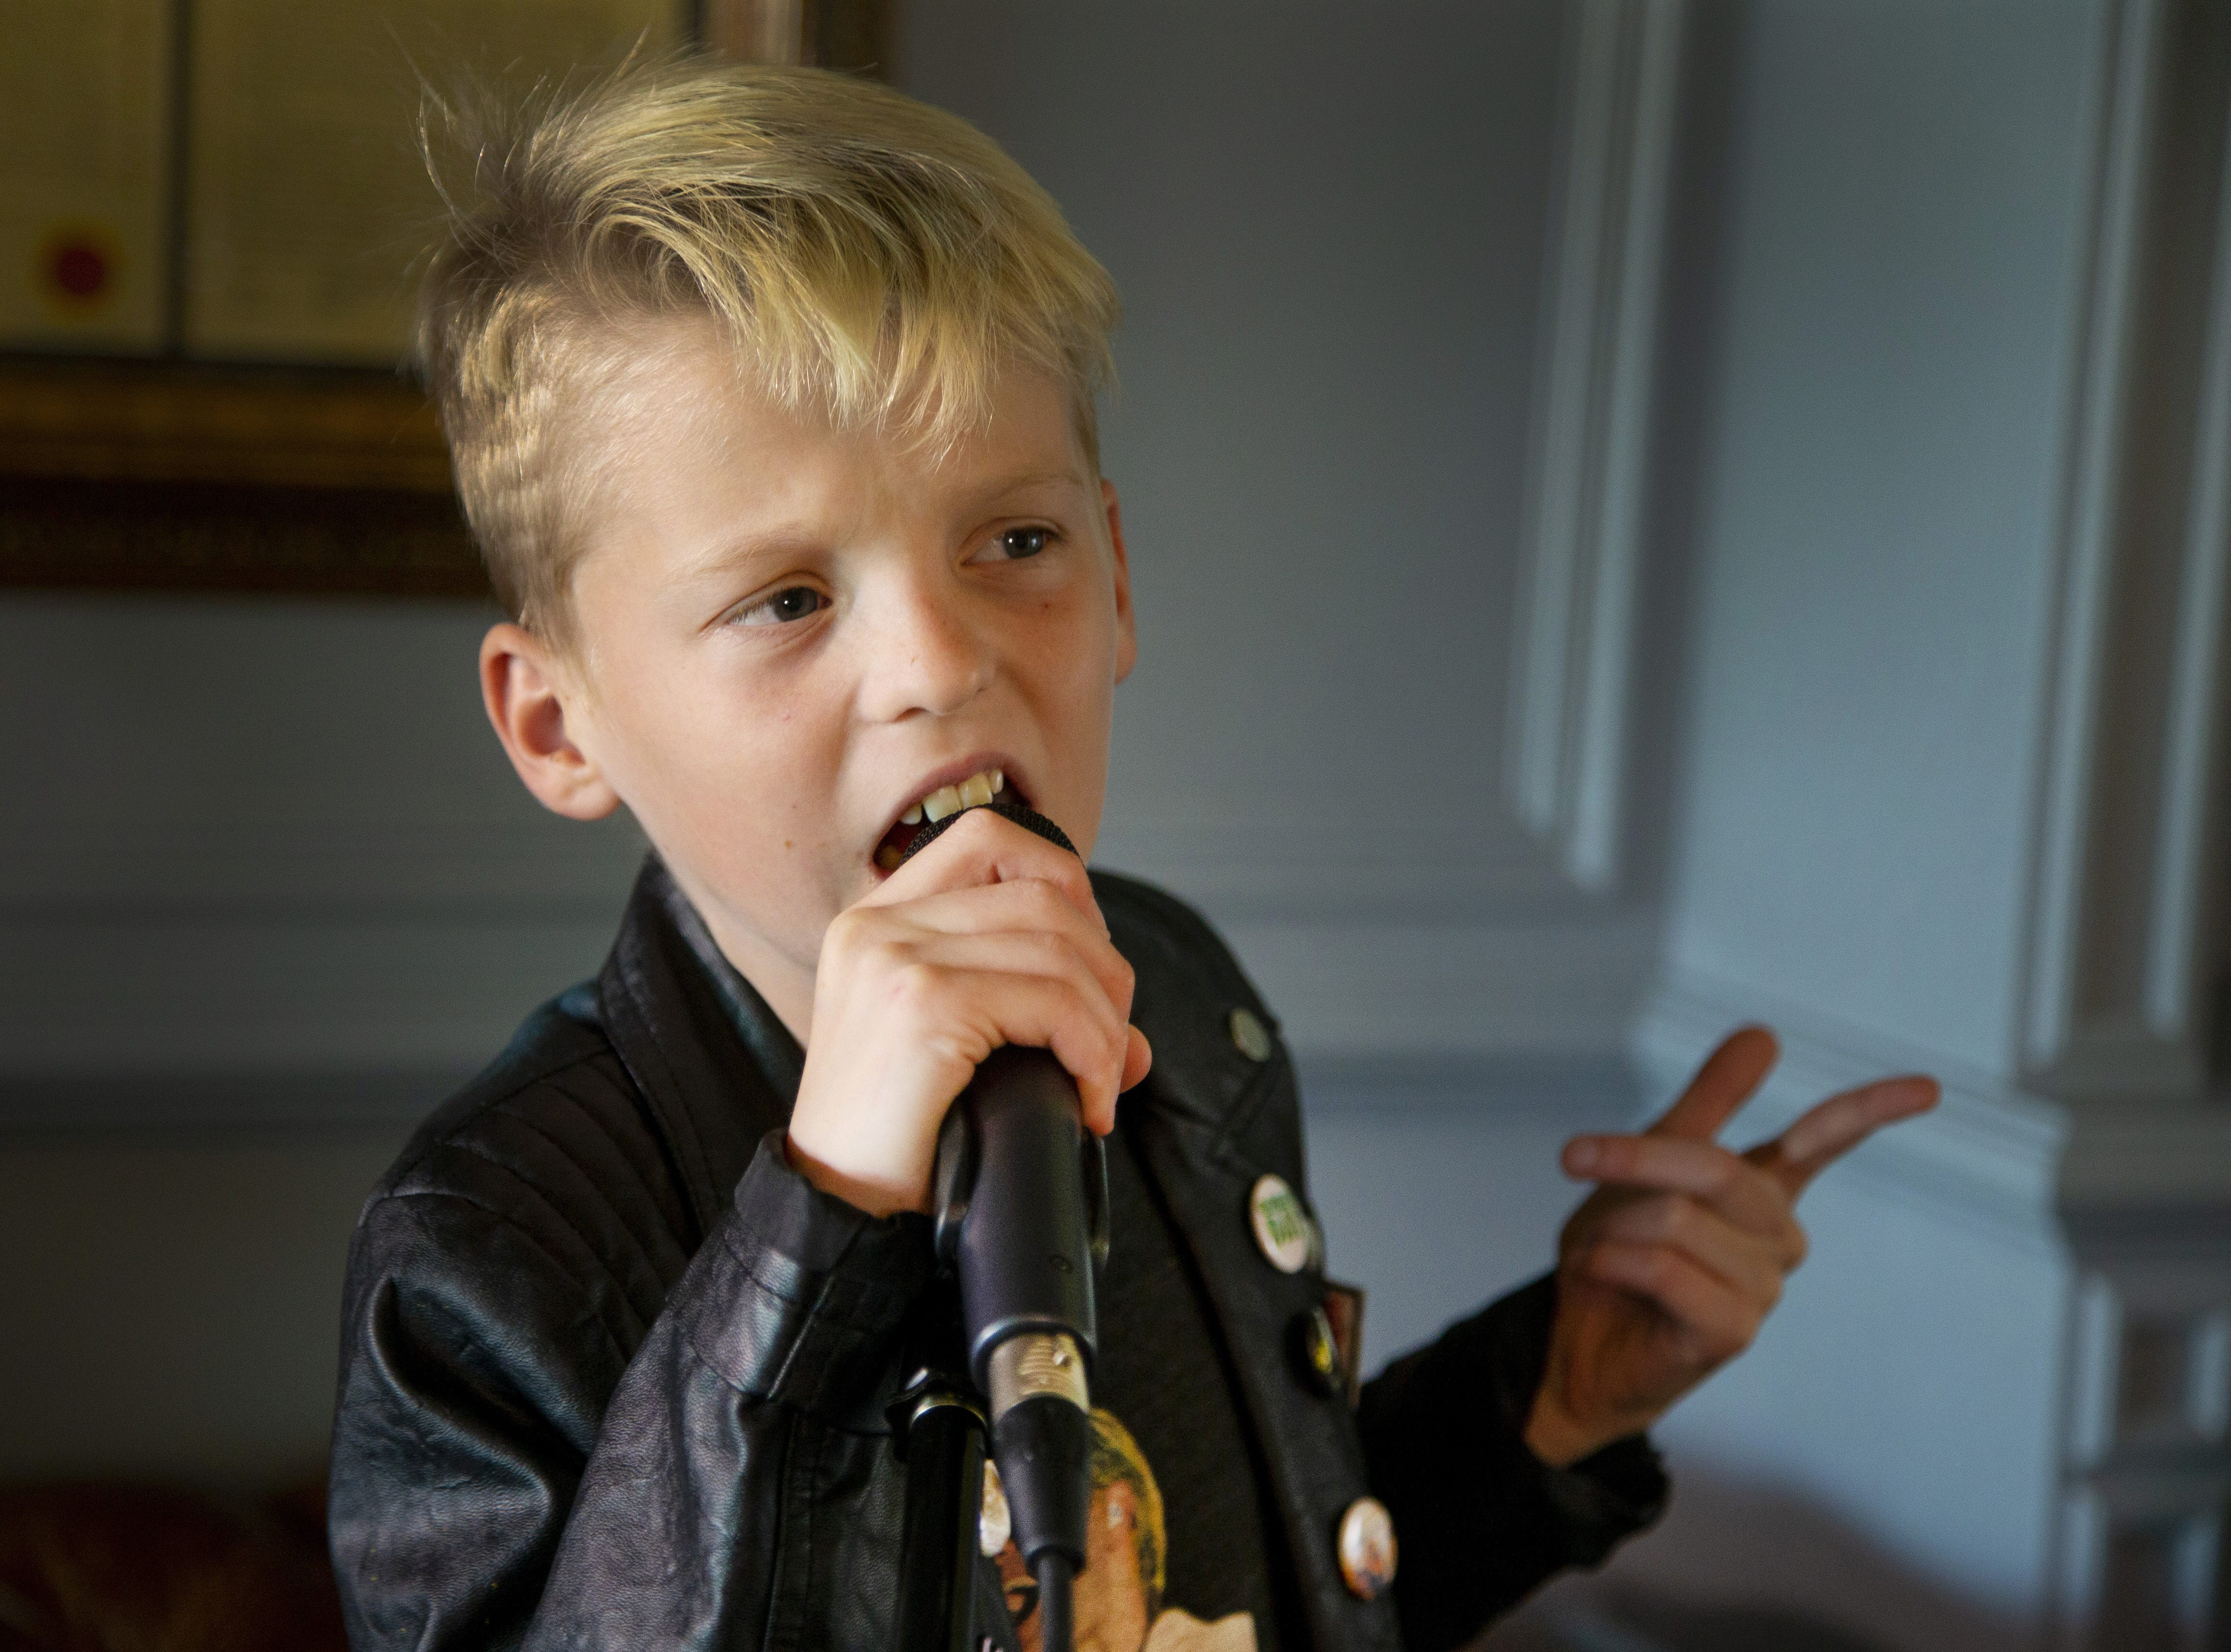 Vedder Gabriel, 10, of Peoria, is the kid who seems to wind up singing with huge celebrities in a variety of genres, from Chris Stapleton to Jared Leto. Gabriel and his twin sister, Winter, were born premature. He was not expected to live. Vedder loves music and even attends the School of Rock.